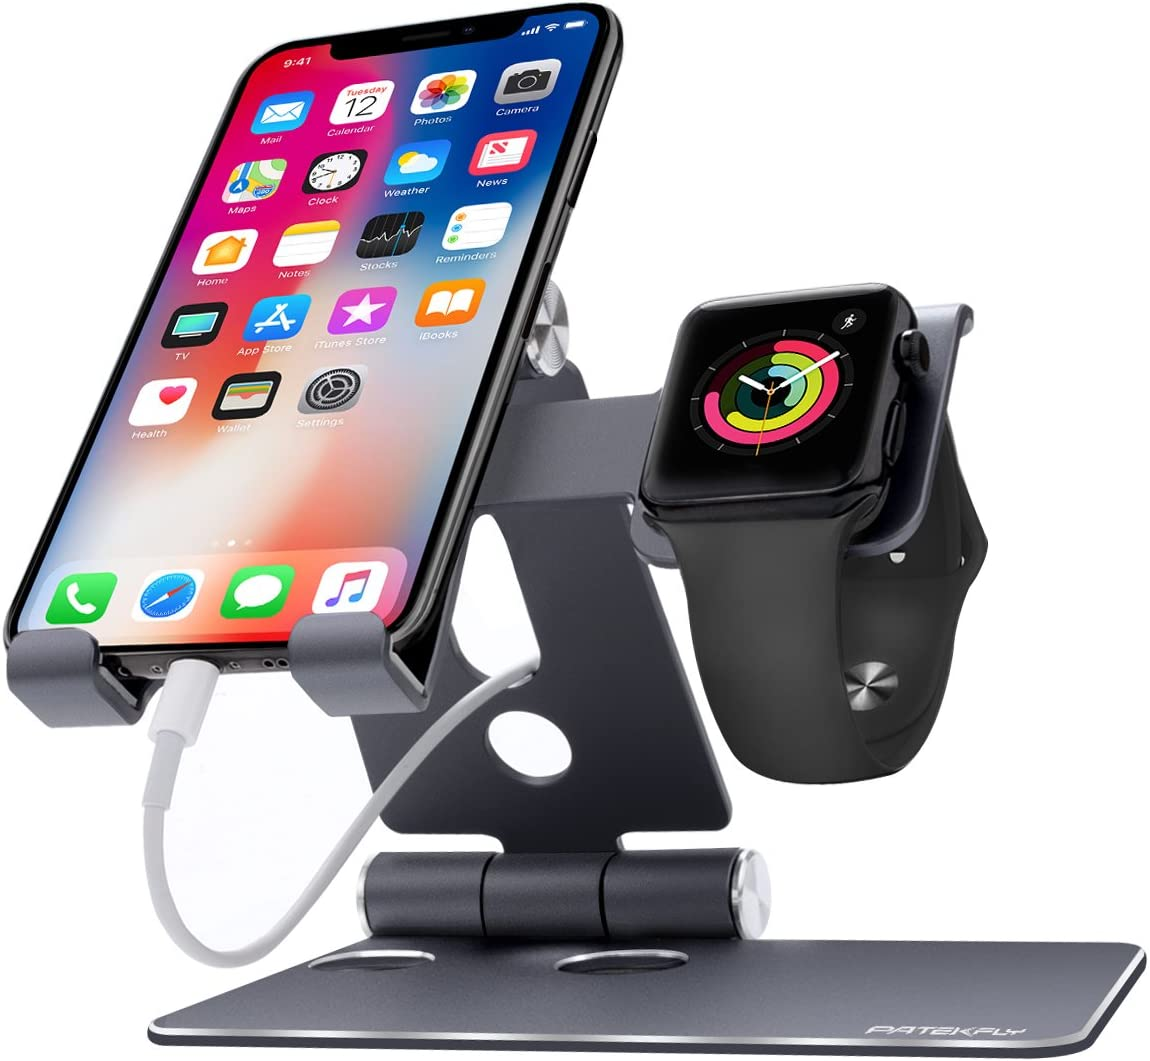 Phone Stand Compatible with Phone and Watch,Patekfly 2 in 1 Universal Desktop Cell Phone Stand and Watch Stand, Foldable Aluminum Stand Holder for Phone,Watch